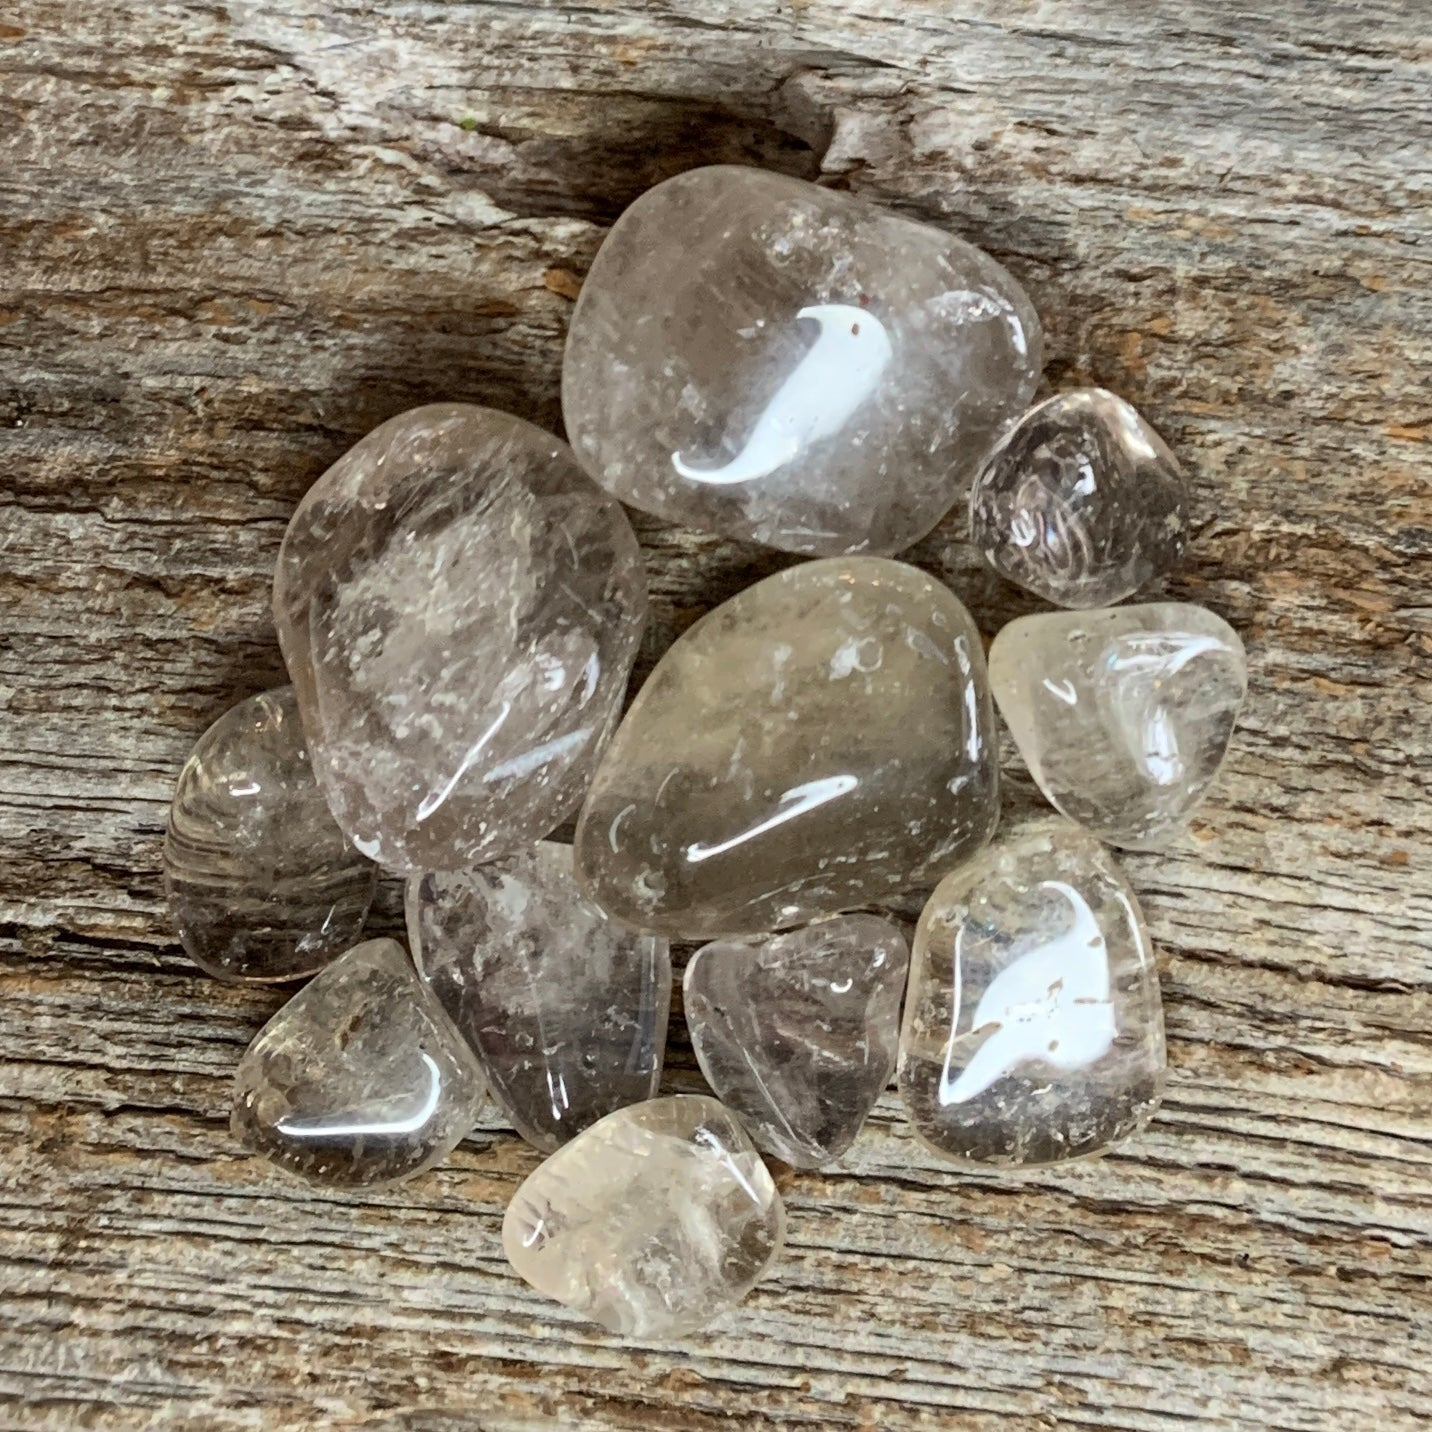 Light Smoky Quartz Tumbled Stones